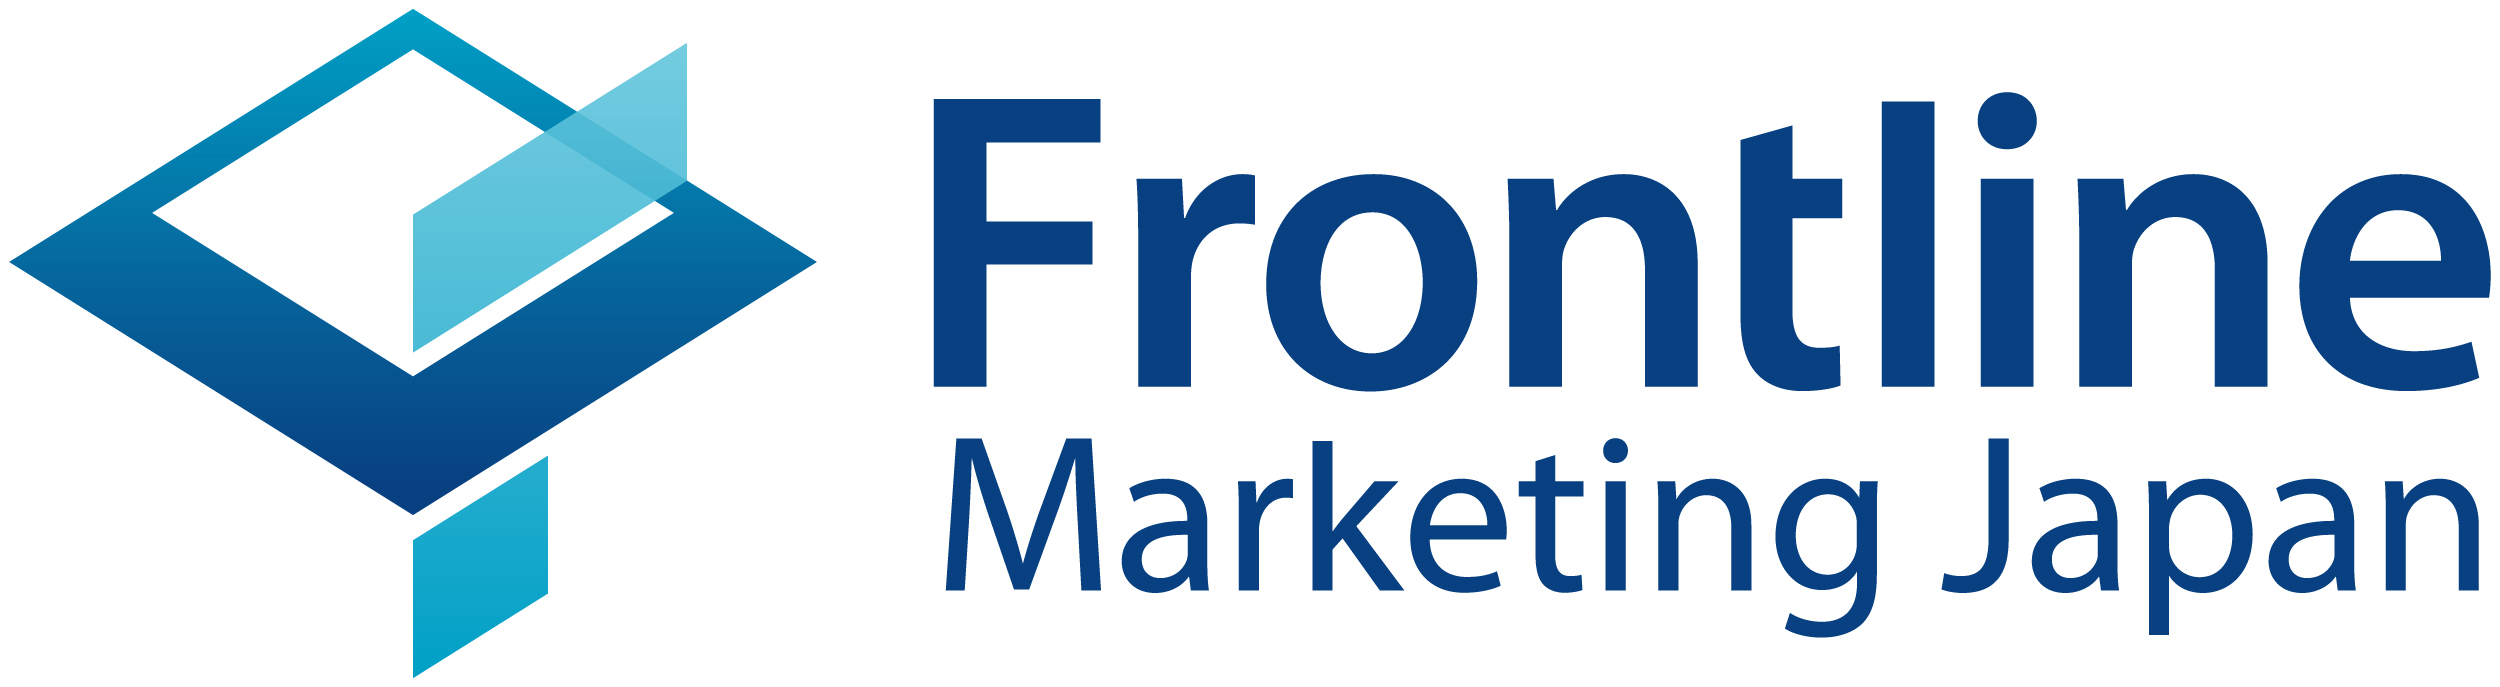 Frontline Marketing Japan 株式会社